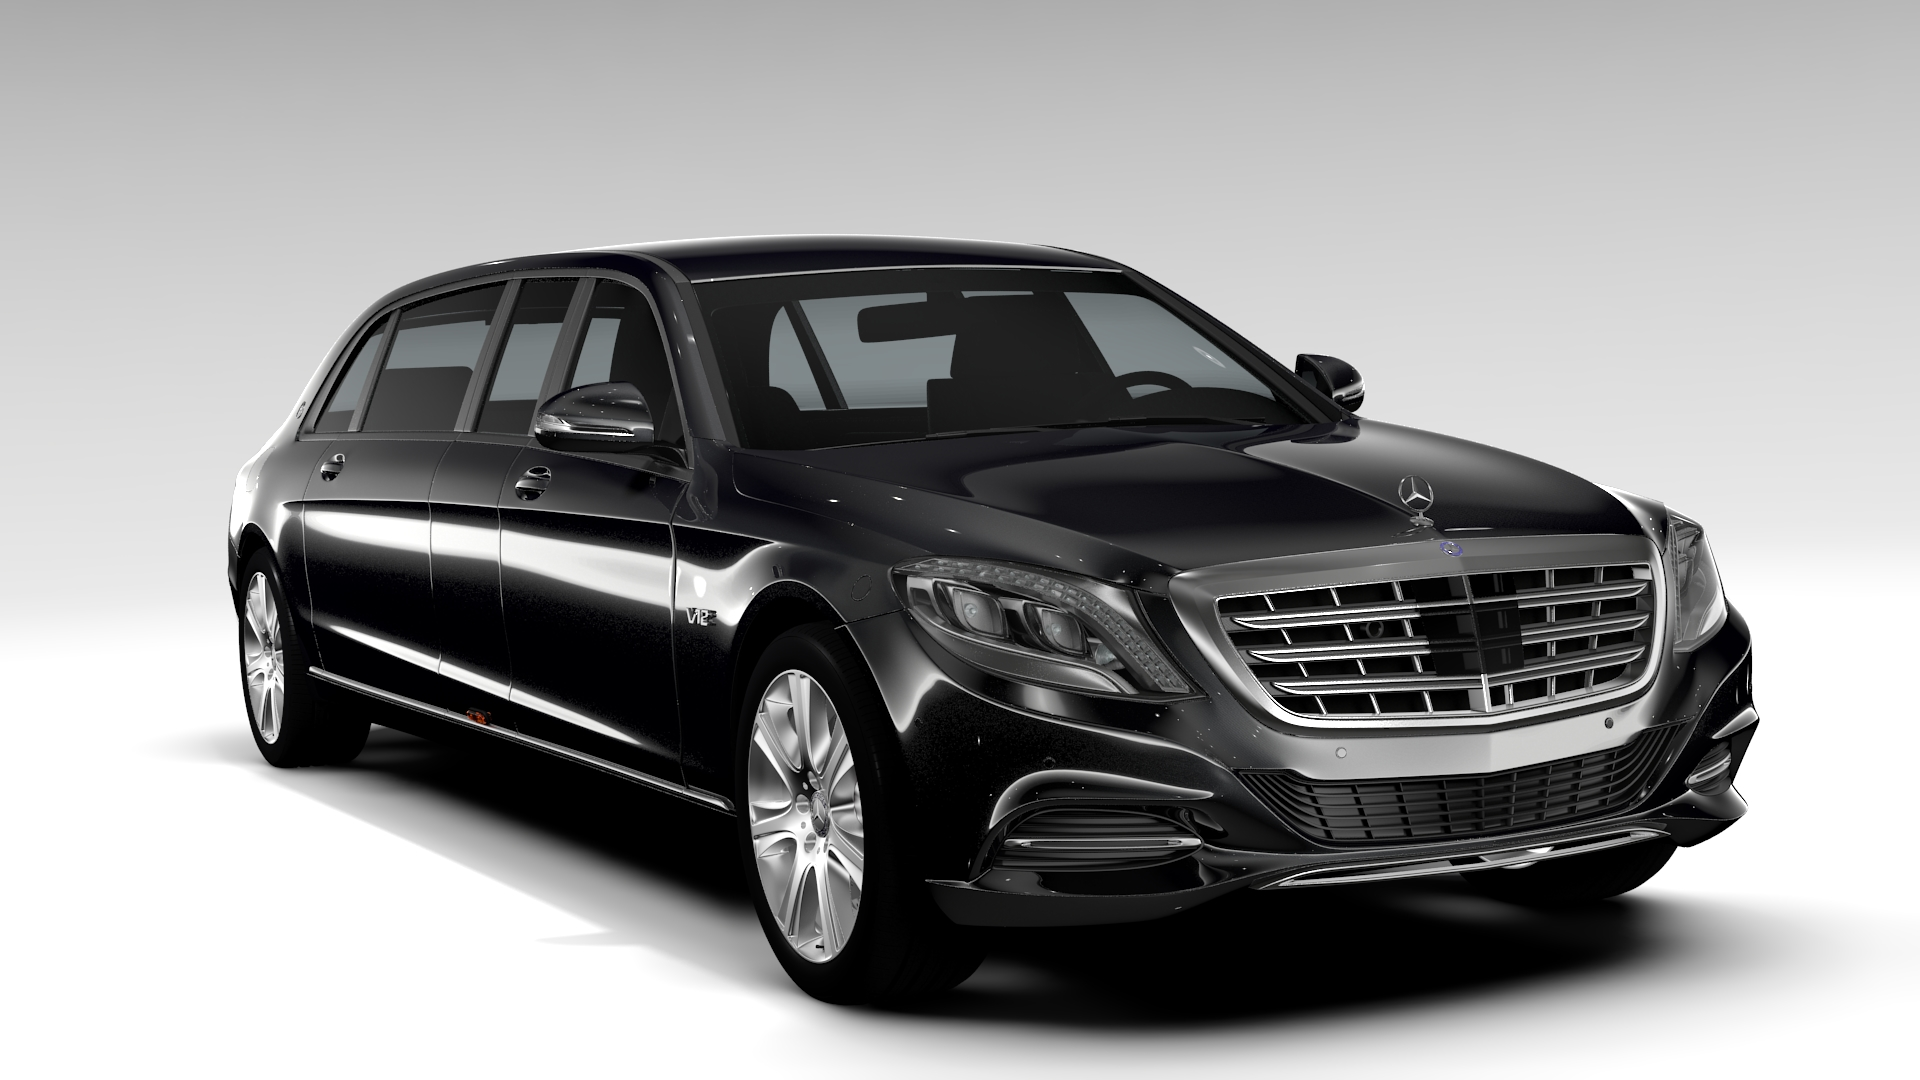 mercedes maybach pullman guard 2017 3d model 3ds max fbx c4d lwo ma mb hrc xsi obj 221375